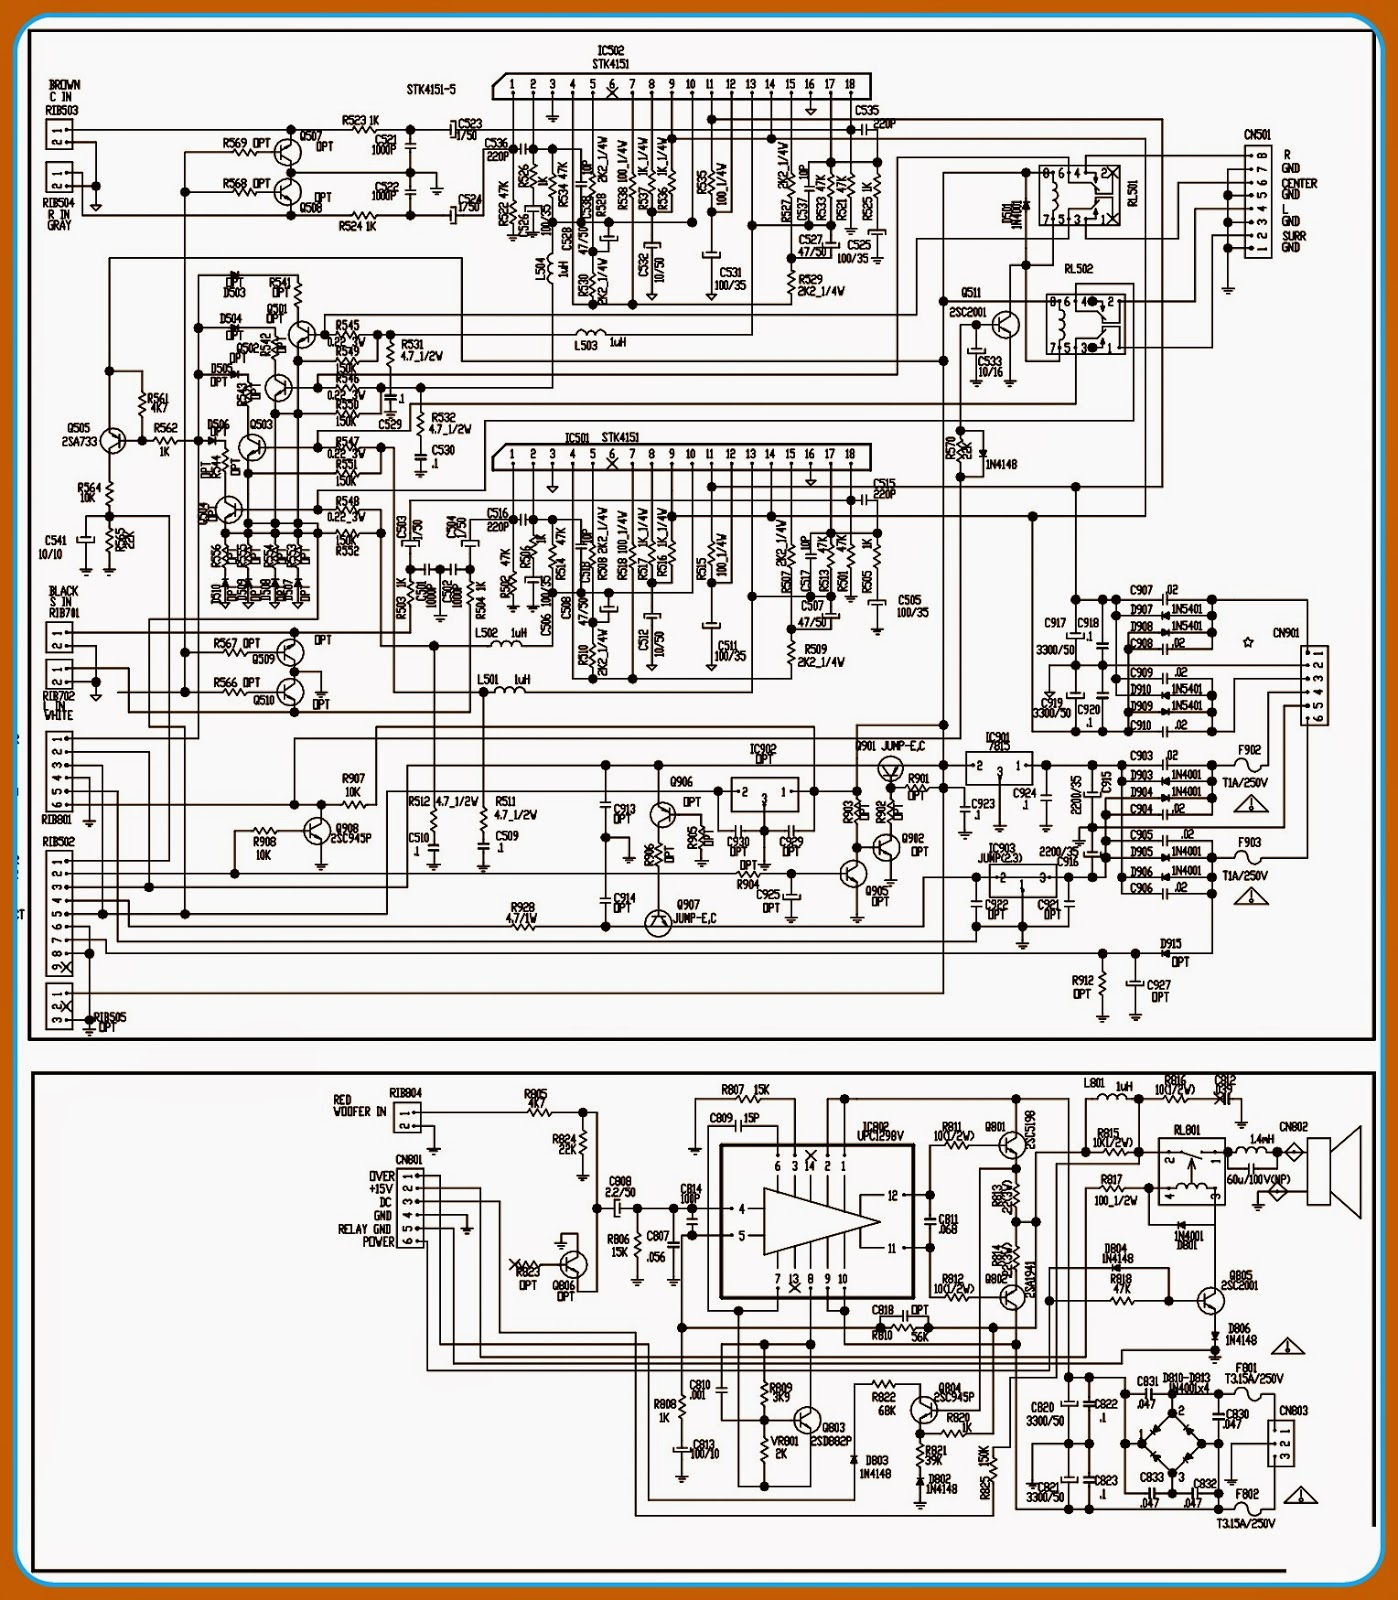 Wiring Diagram Kenwood Equalizer : Wiring diagram kenwood equalizer kna g